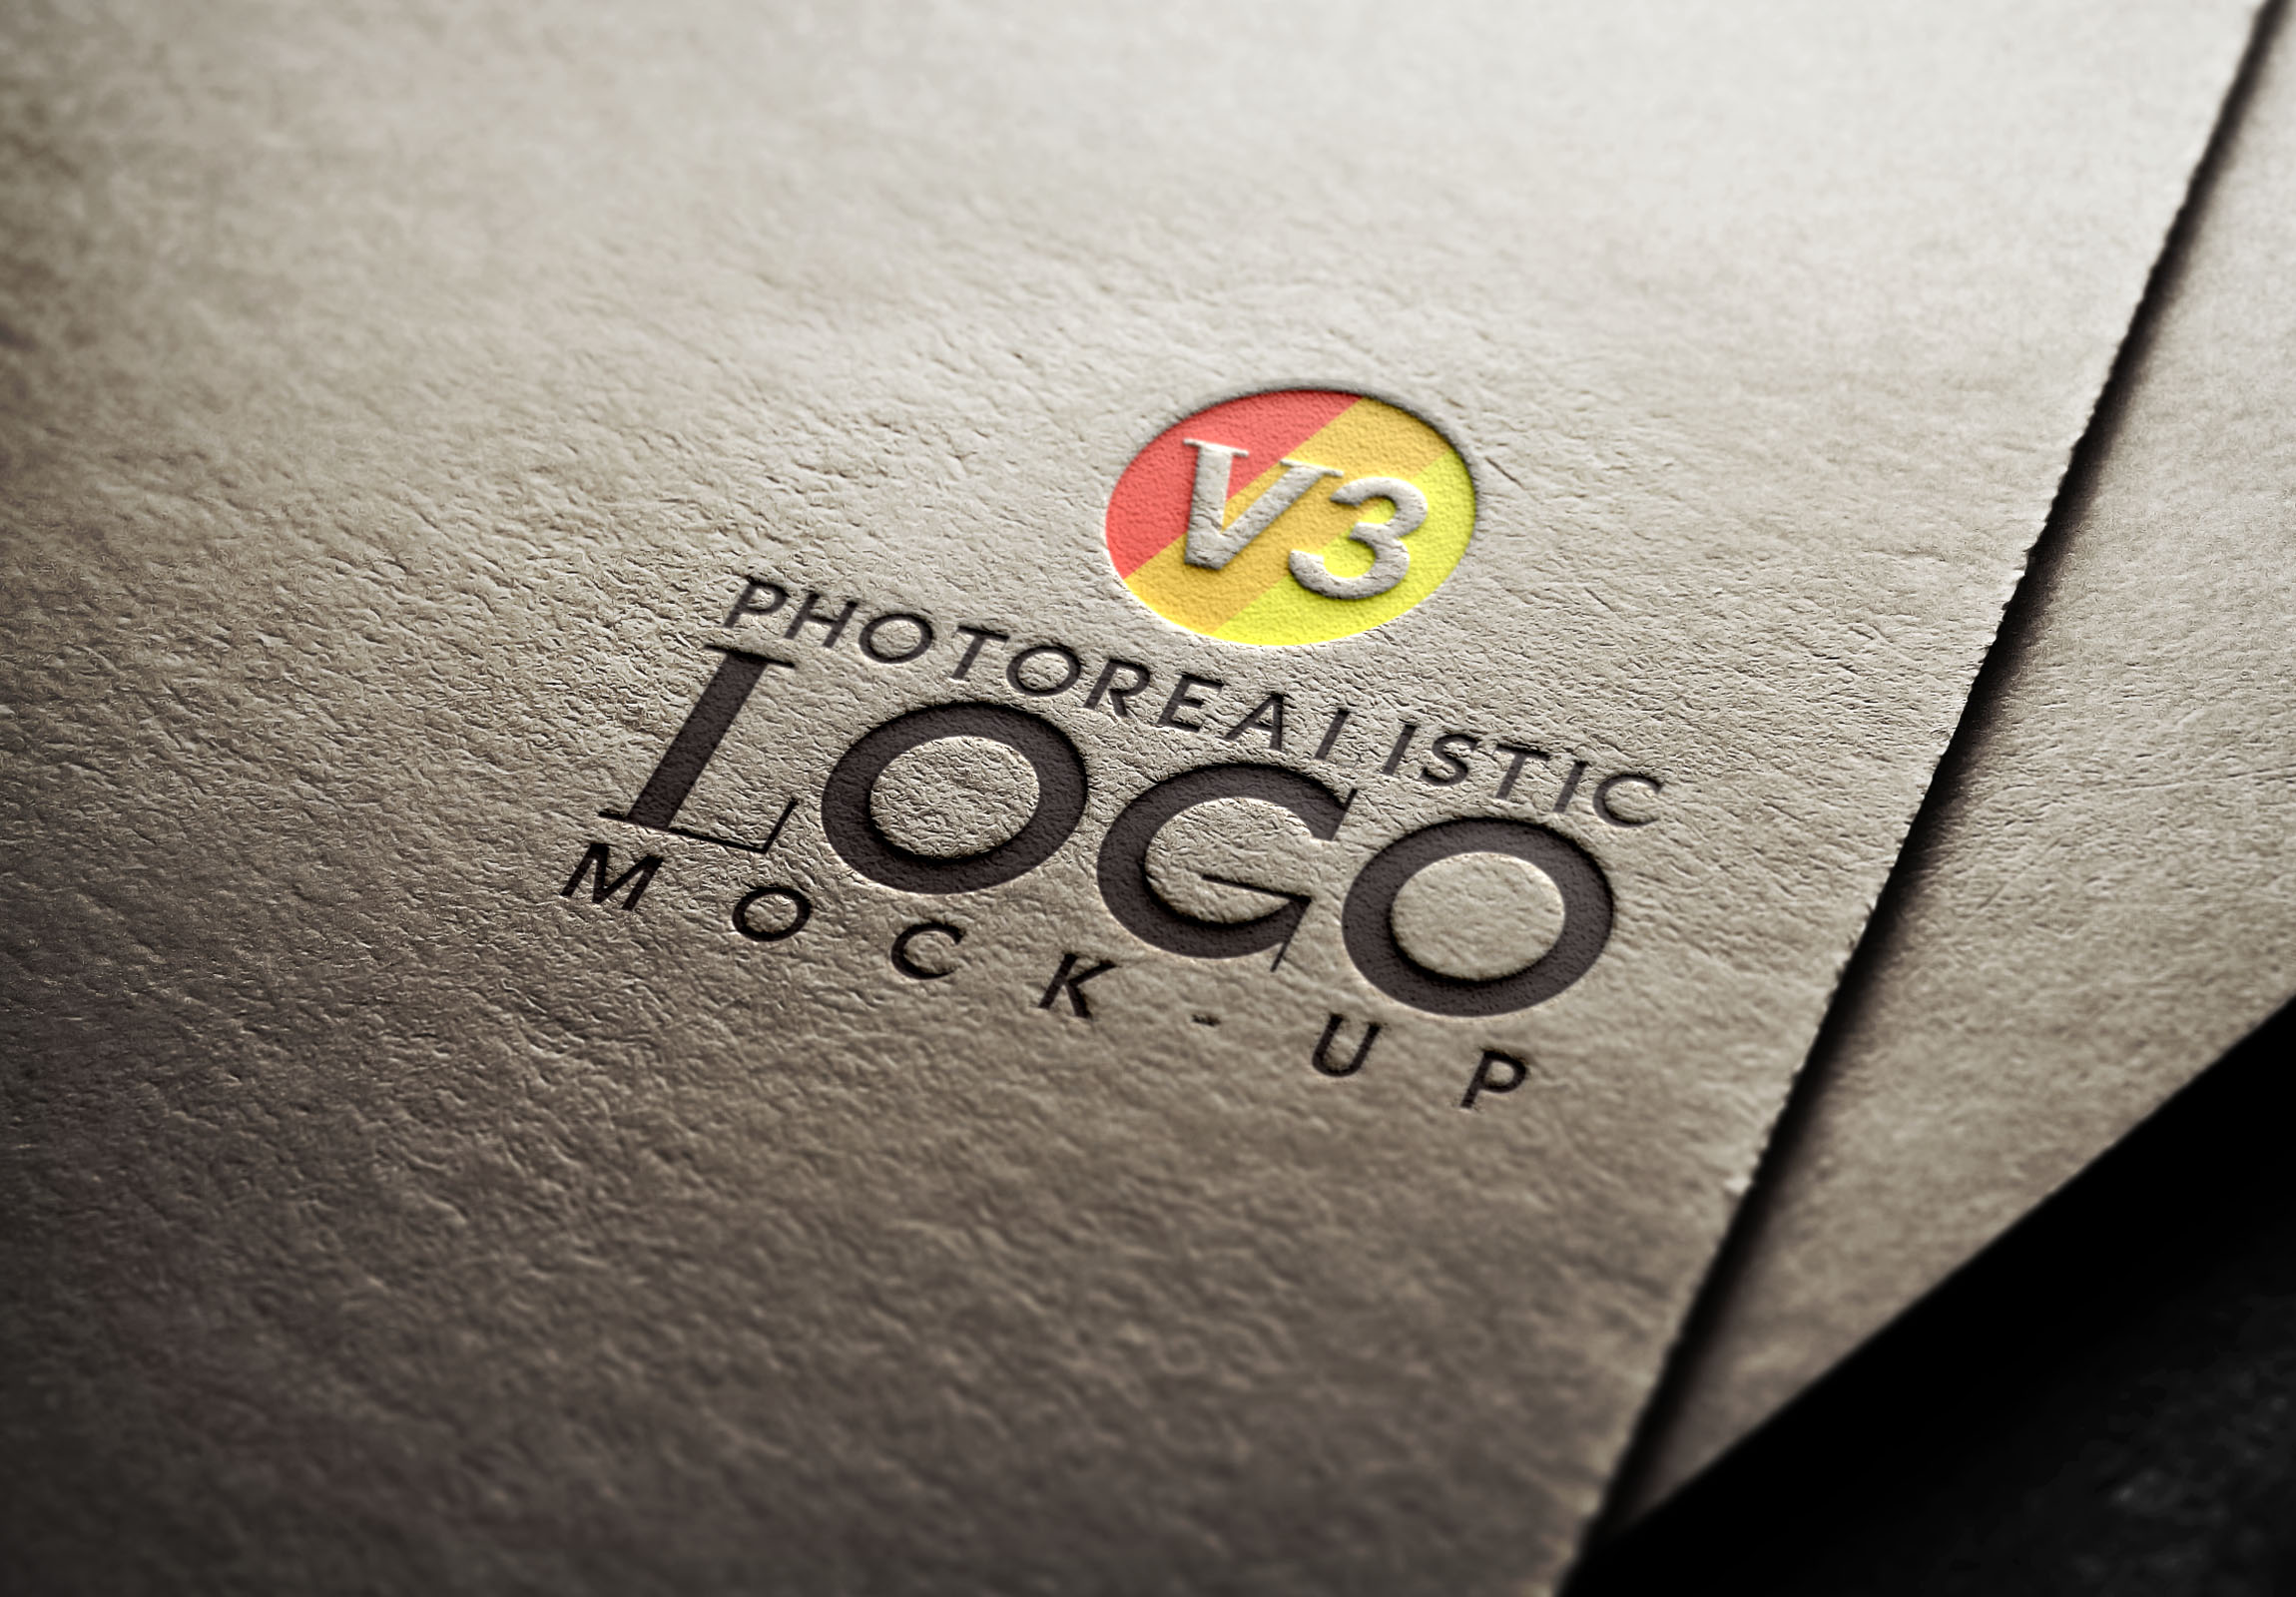 I will design a minimalist perfect logo for your product or business